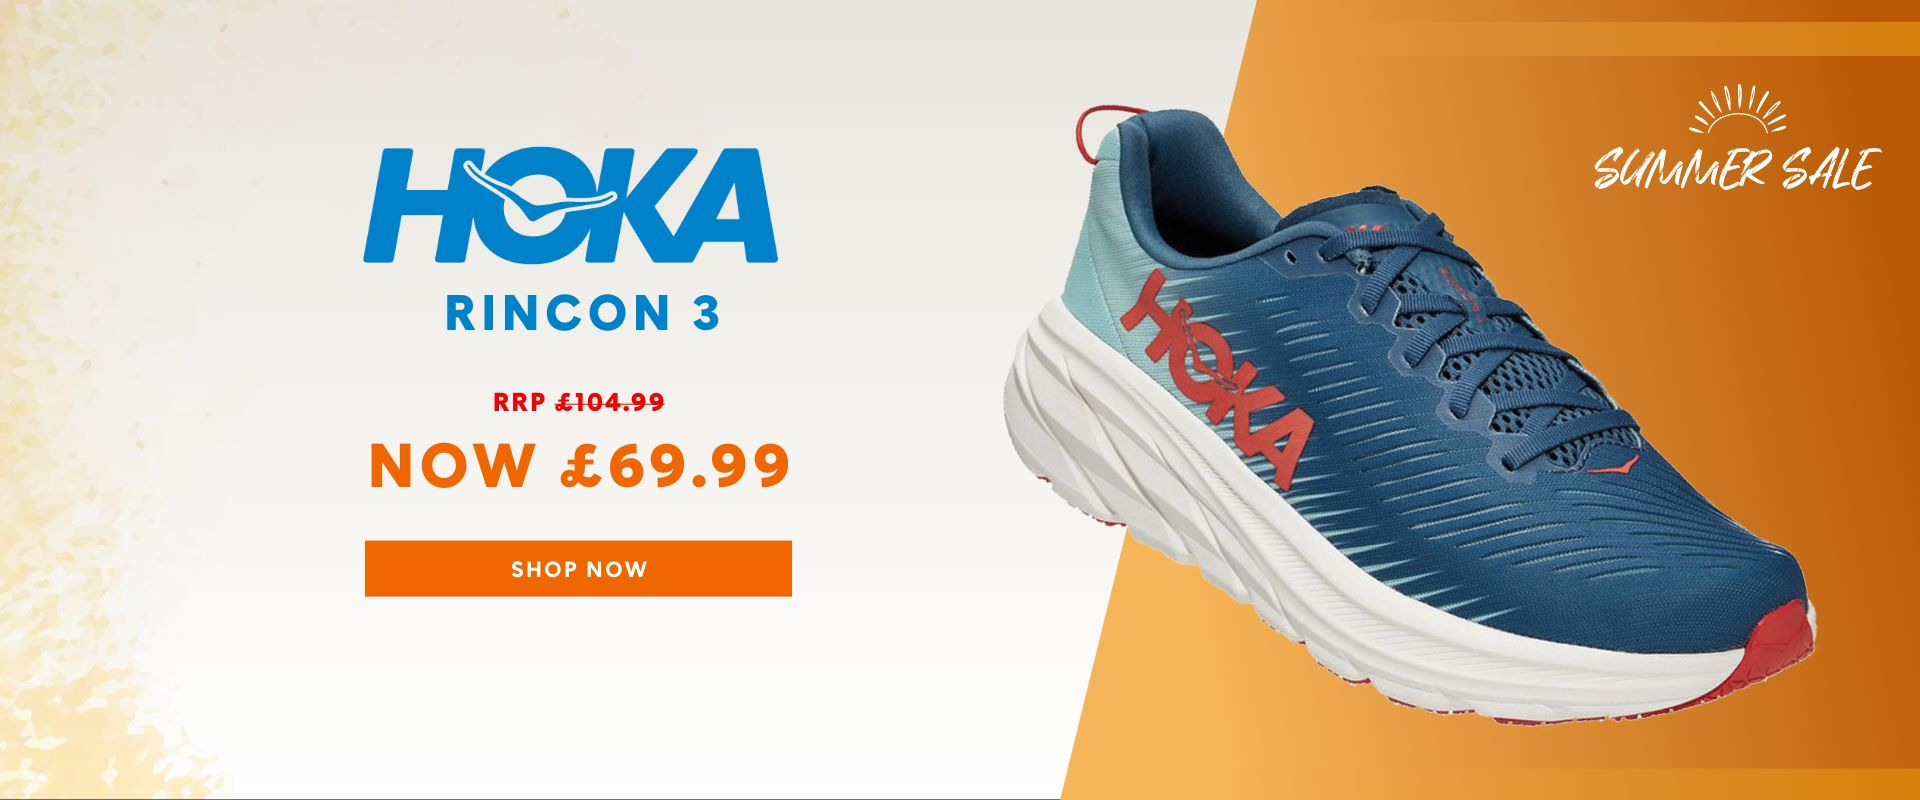 Cheap Running Shoes, Trainers & Clothes | Up to 80% Off | SportsShoes.com